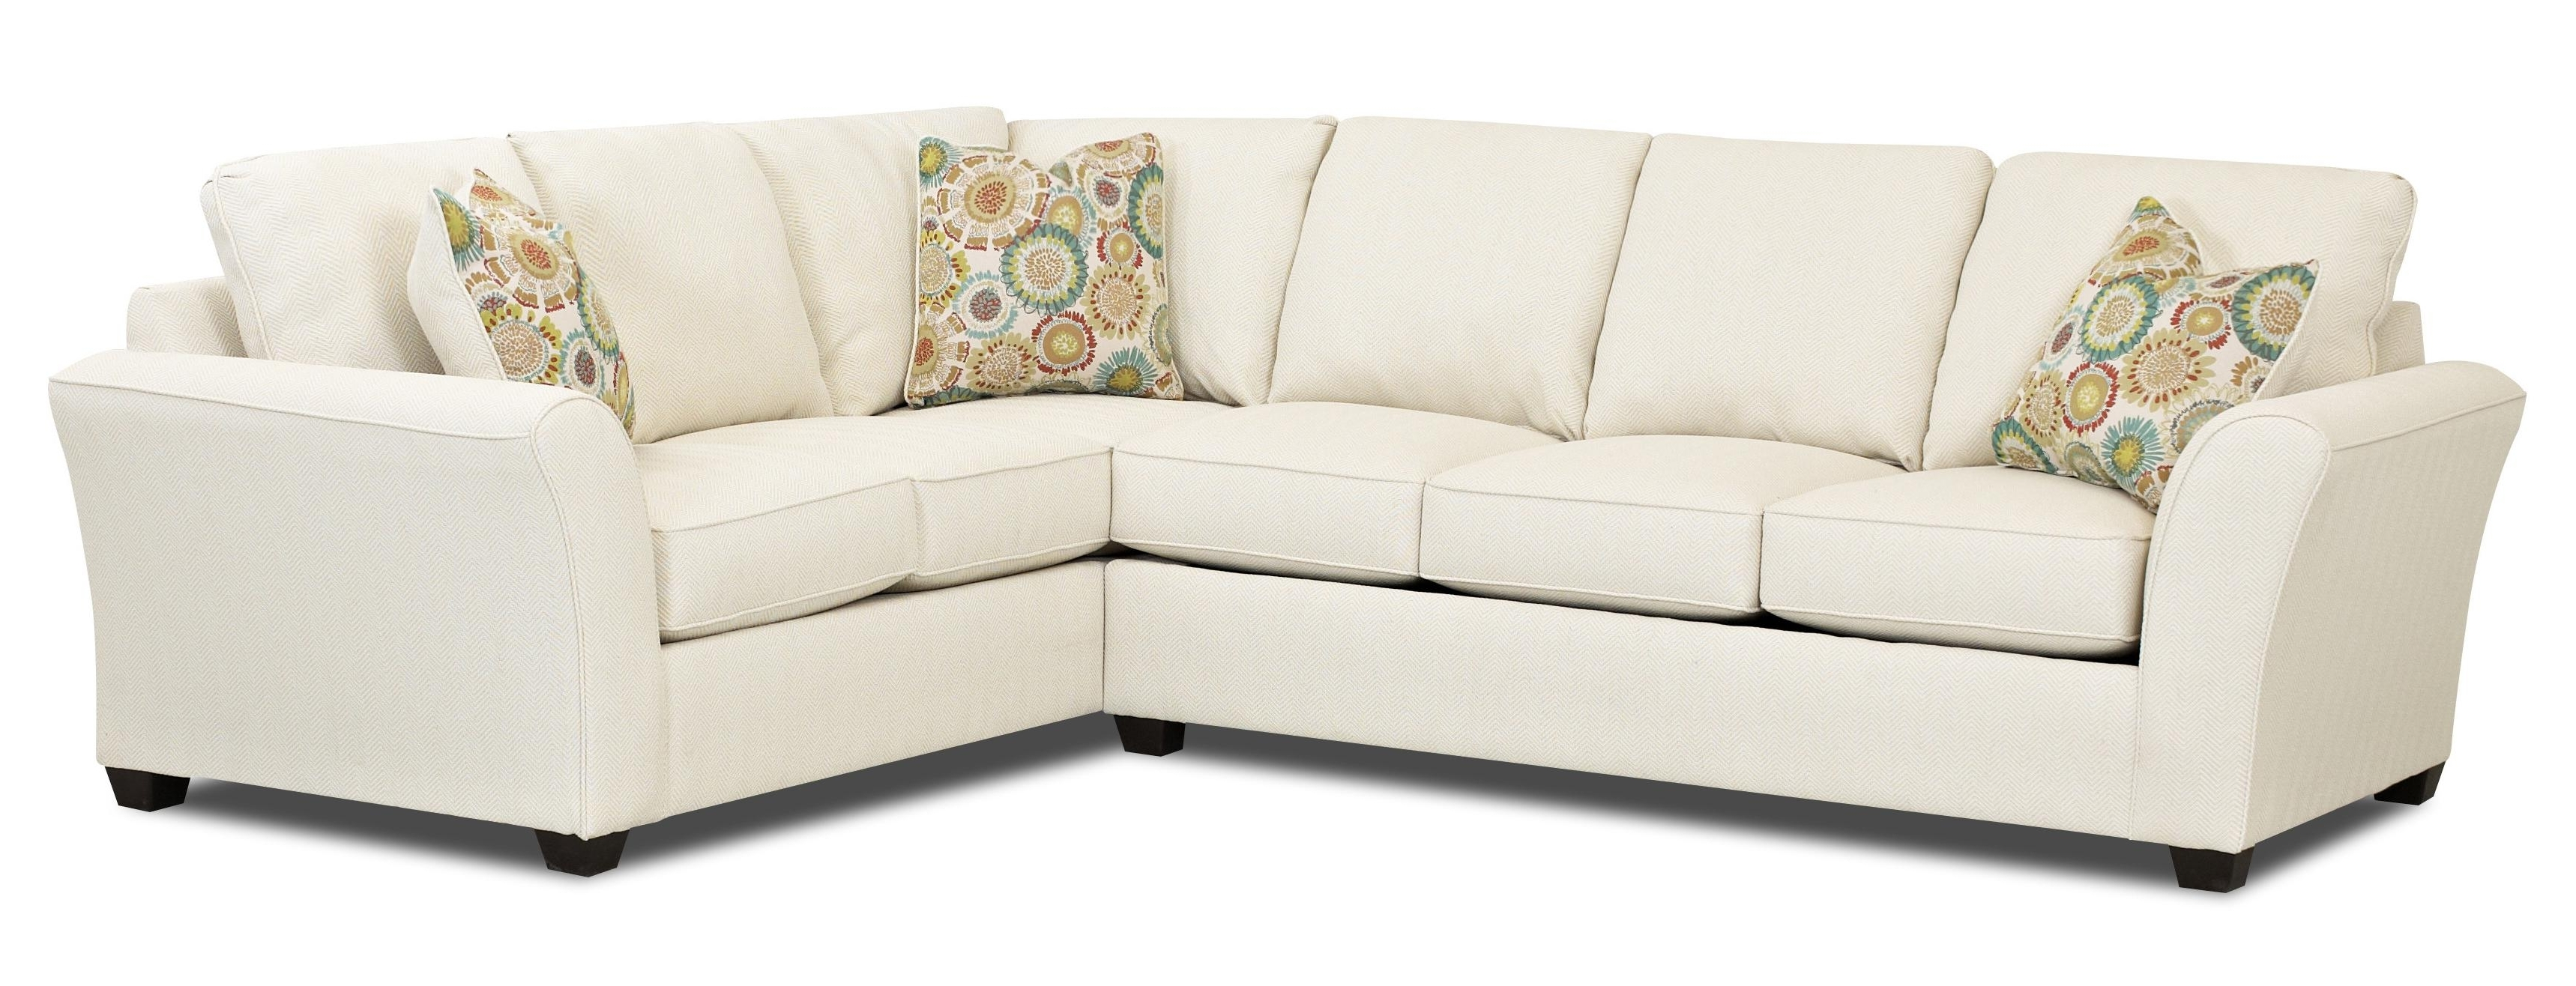 Transitional Sectional Sleeper Sofa With Dreamquest Mattress Throughout Favorite Sectional Sofas With Queen Size Sleeper (View 3 of 20)